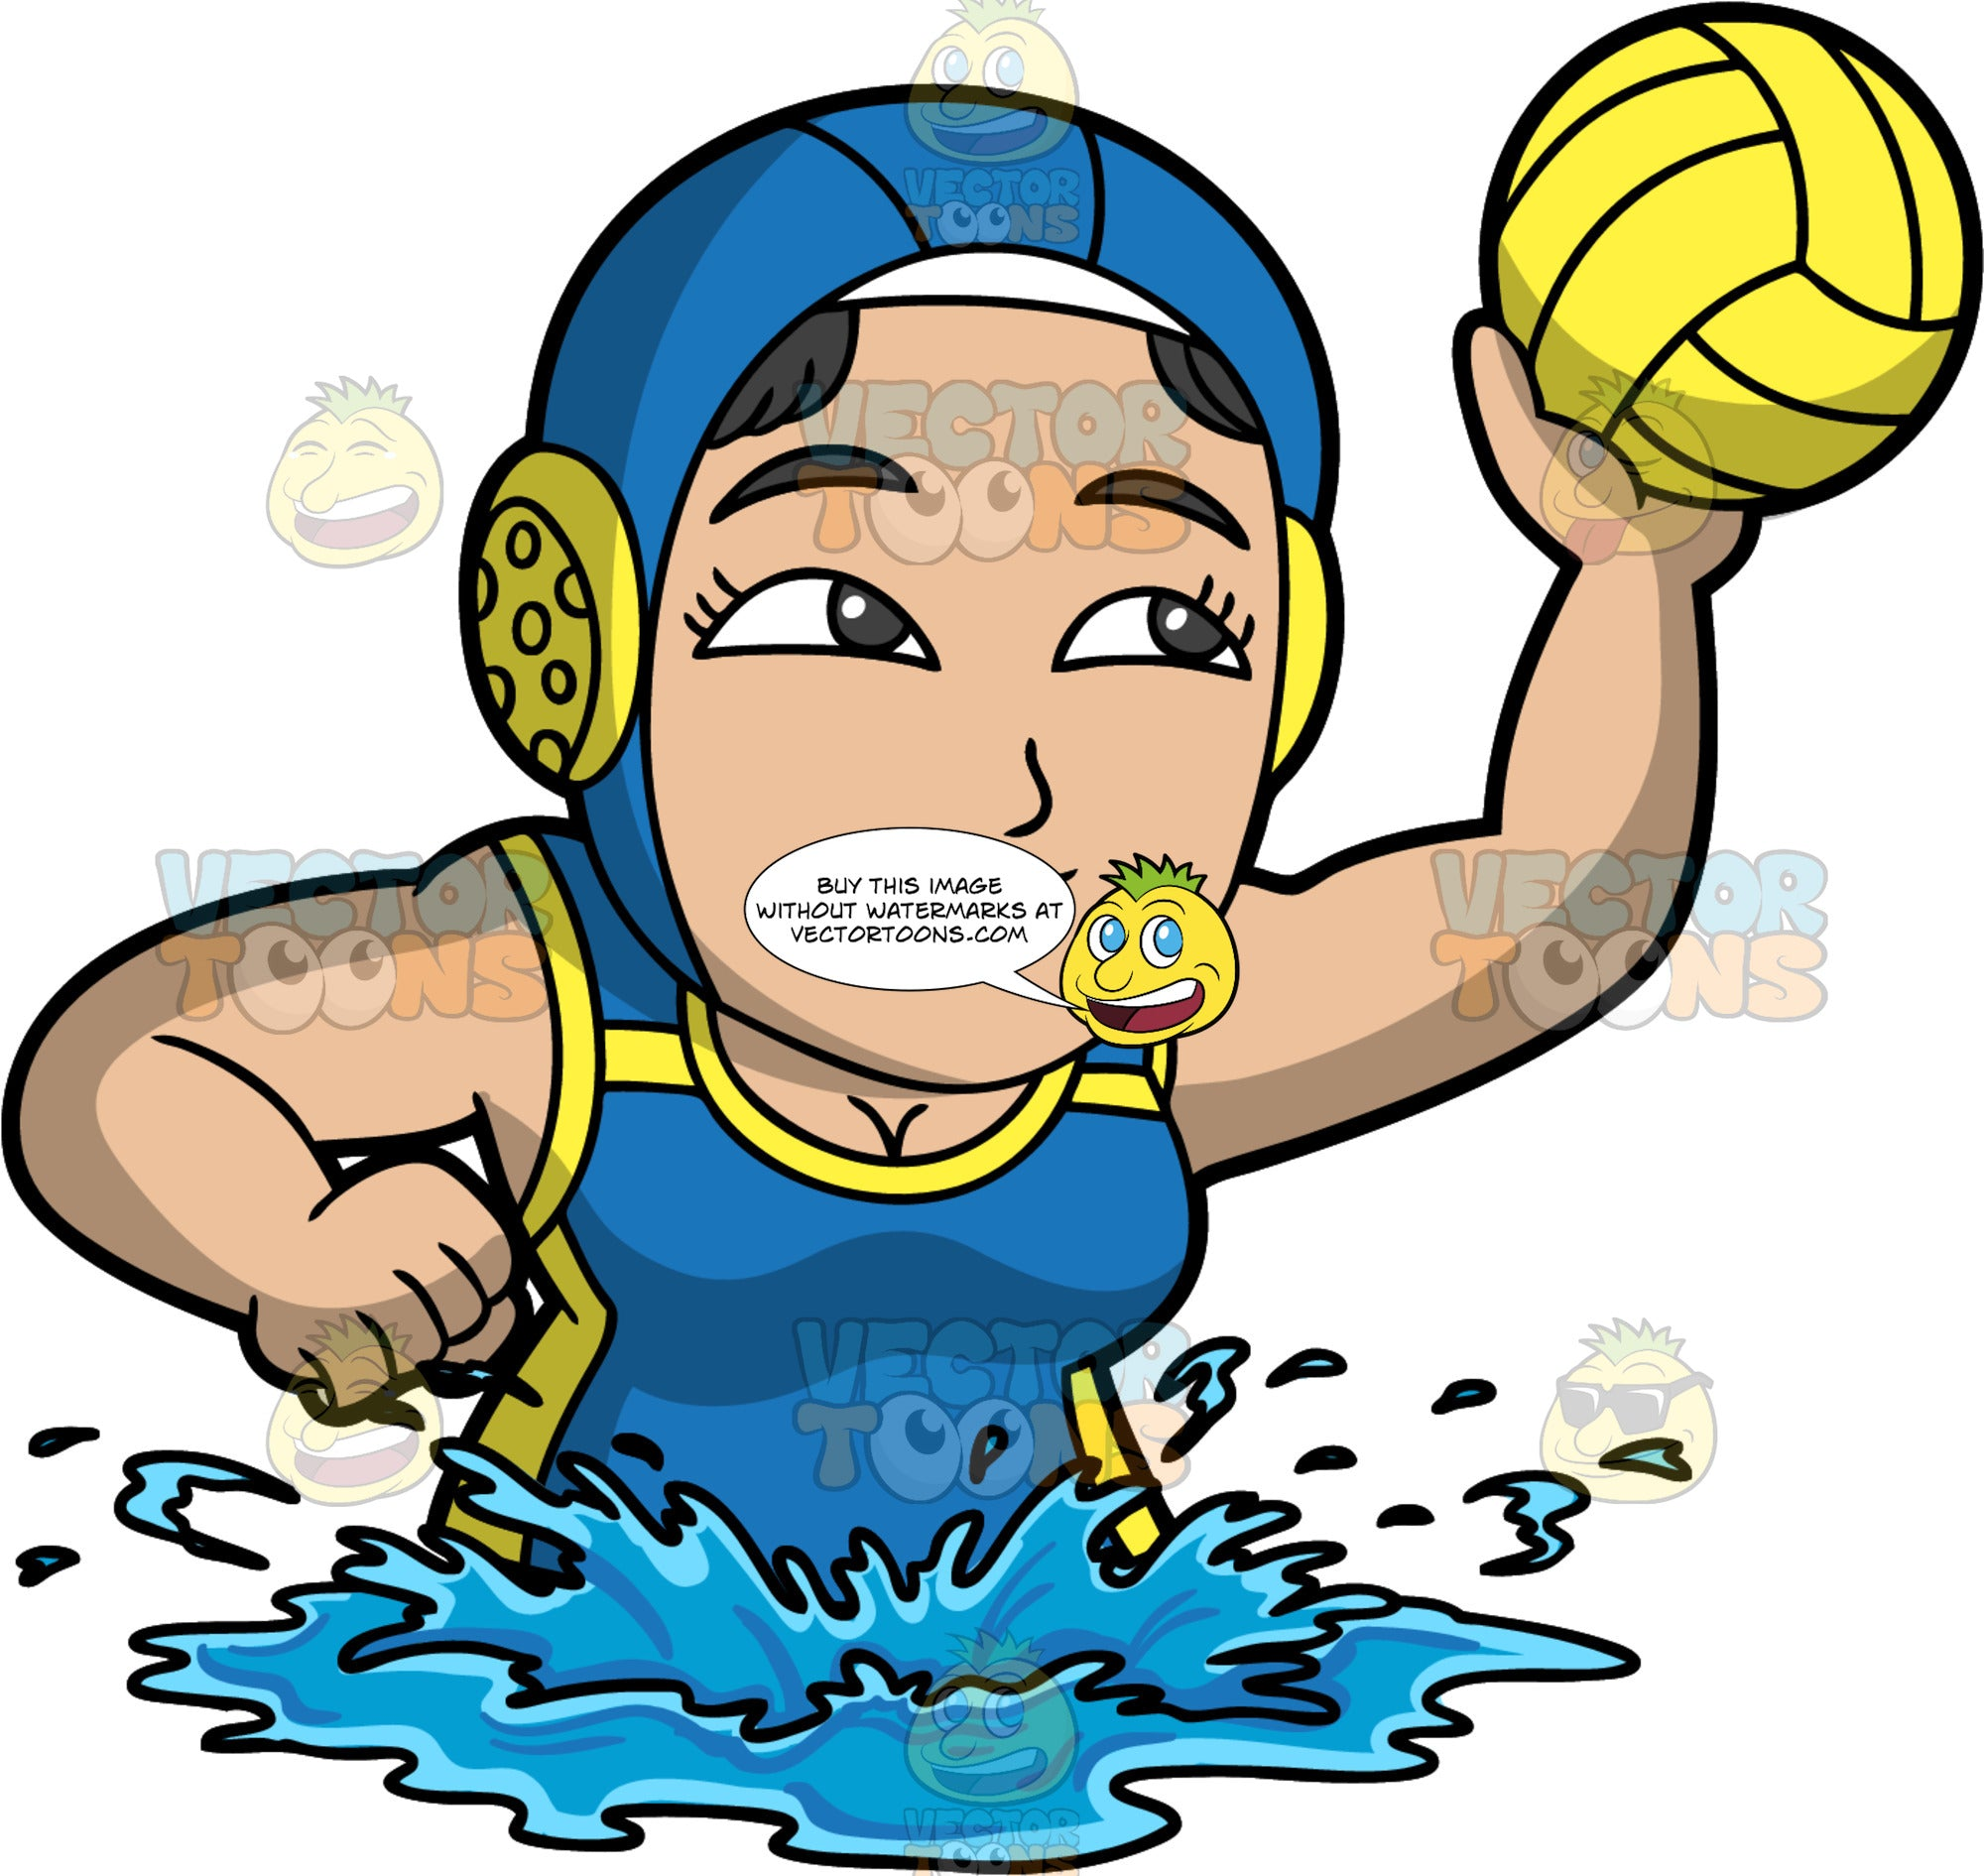 A Woman Getting Ready To Throw A Water Polo Ball. A muscular woman wearing a blue with yellow water polo cap, and a blue with yellow bathing suit, treads water and holds a yellow water polo ball in her hand as she gets ready to throw it